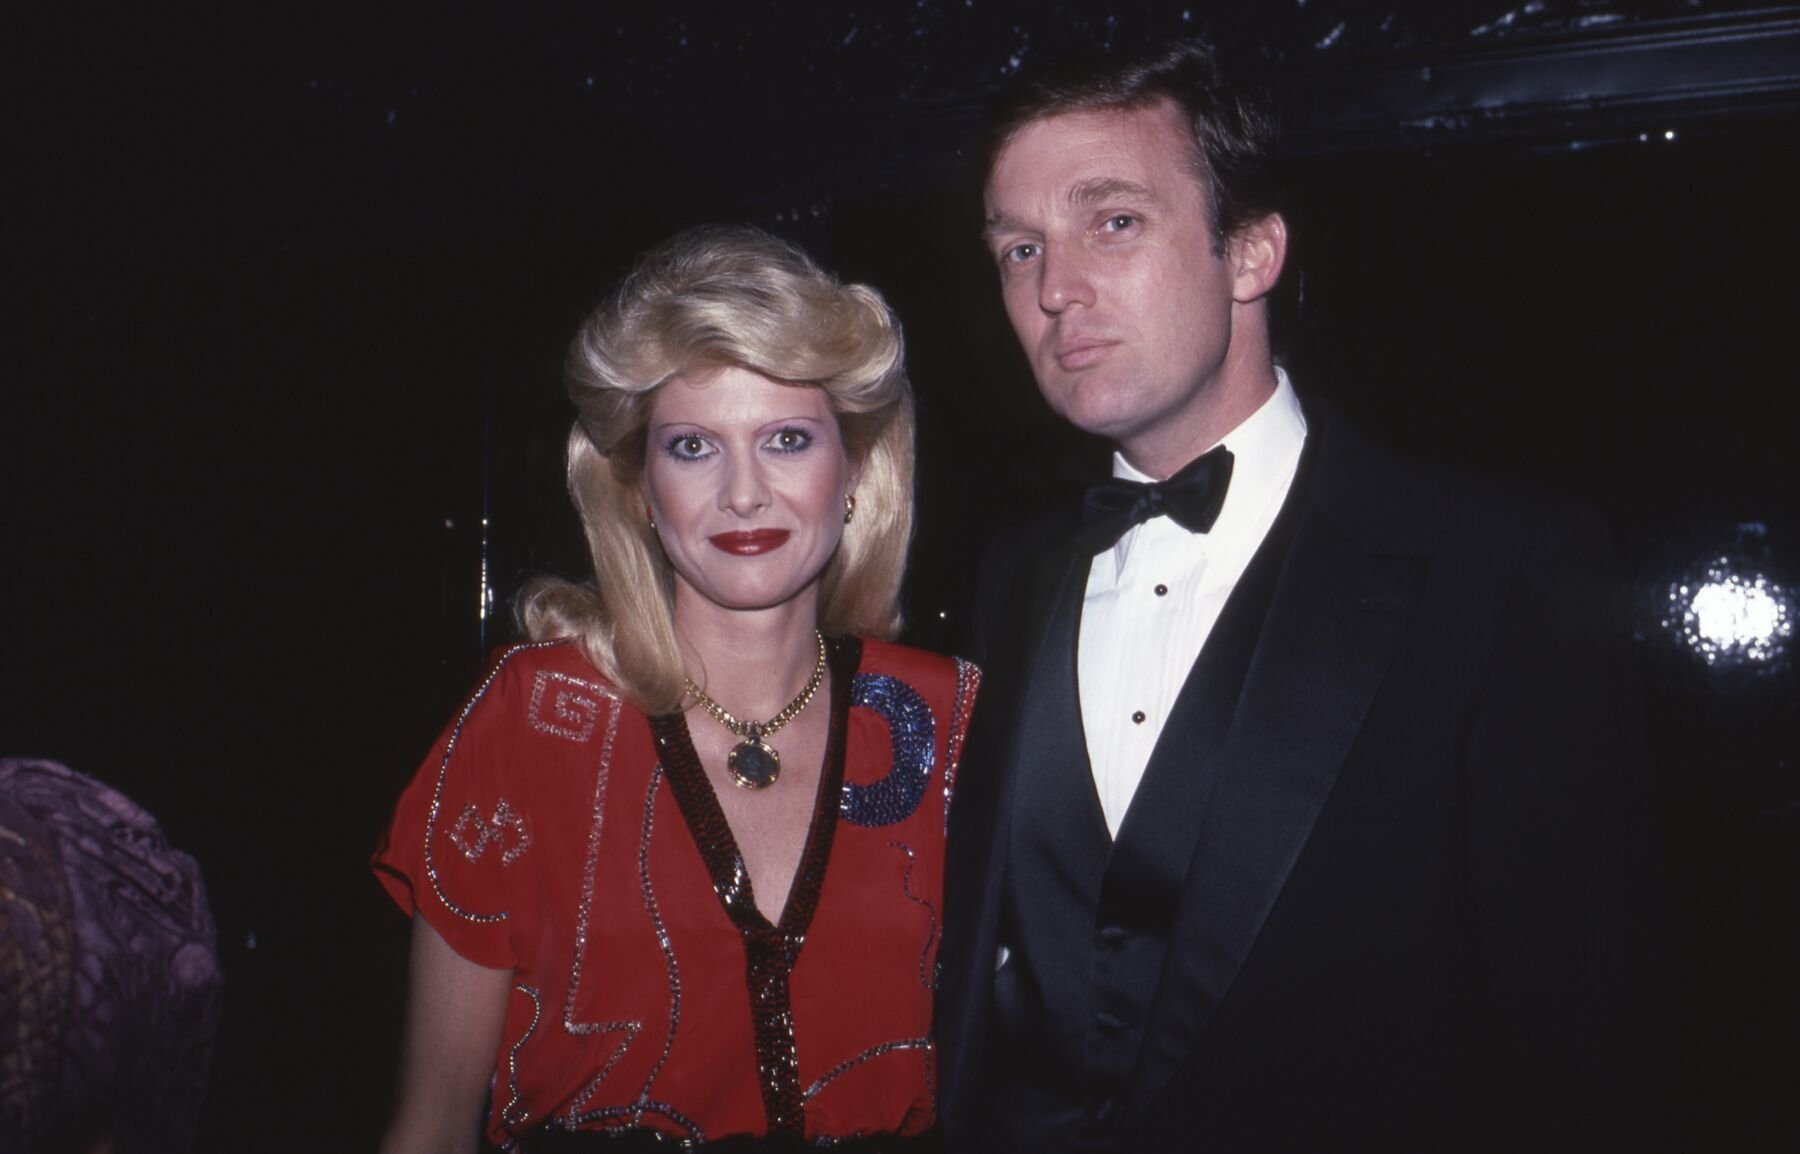 Ivana and Donald Trump at a New York social event, cieca 1985 | Source: Getty Images